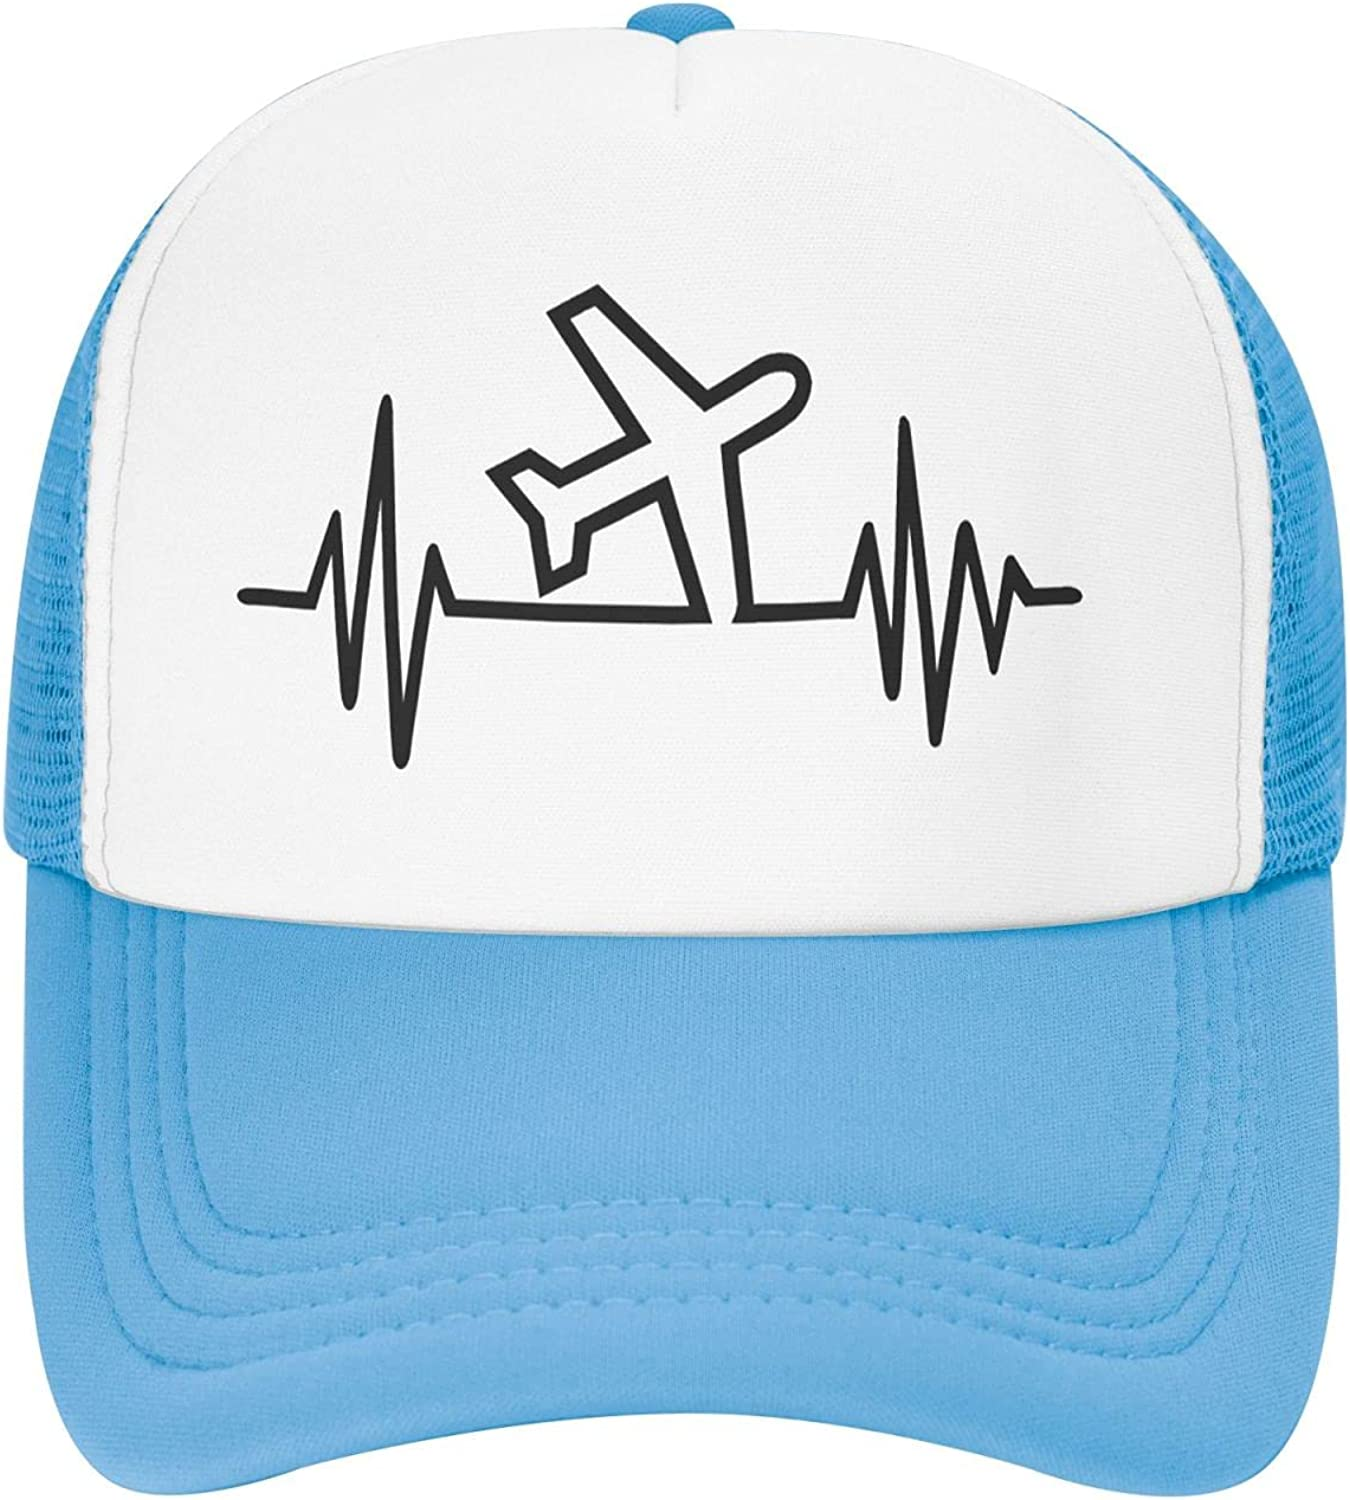 Airplane Pilot Heartbeat Kids Boys Hat Trucker Adjustable Max 78% OFF Factory outlet Girls